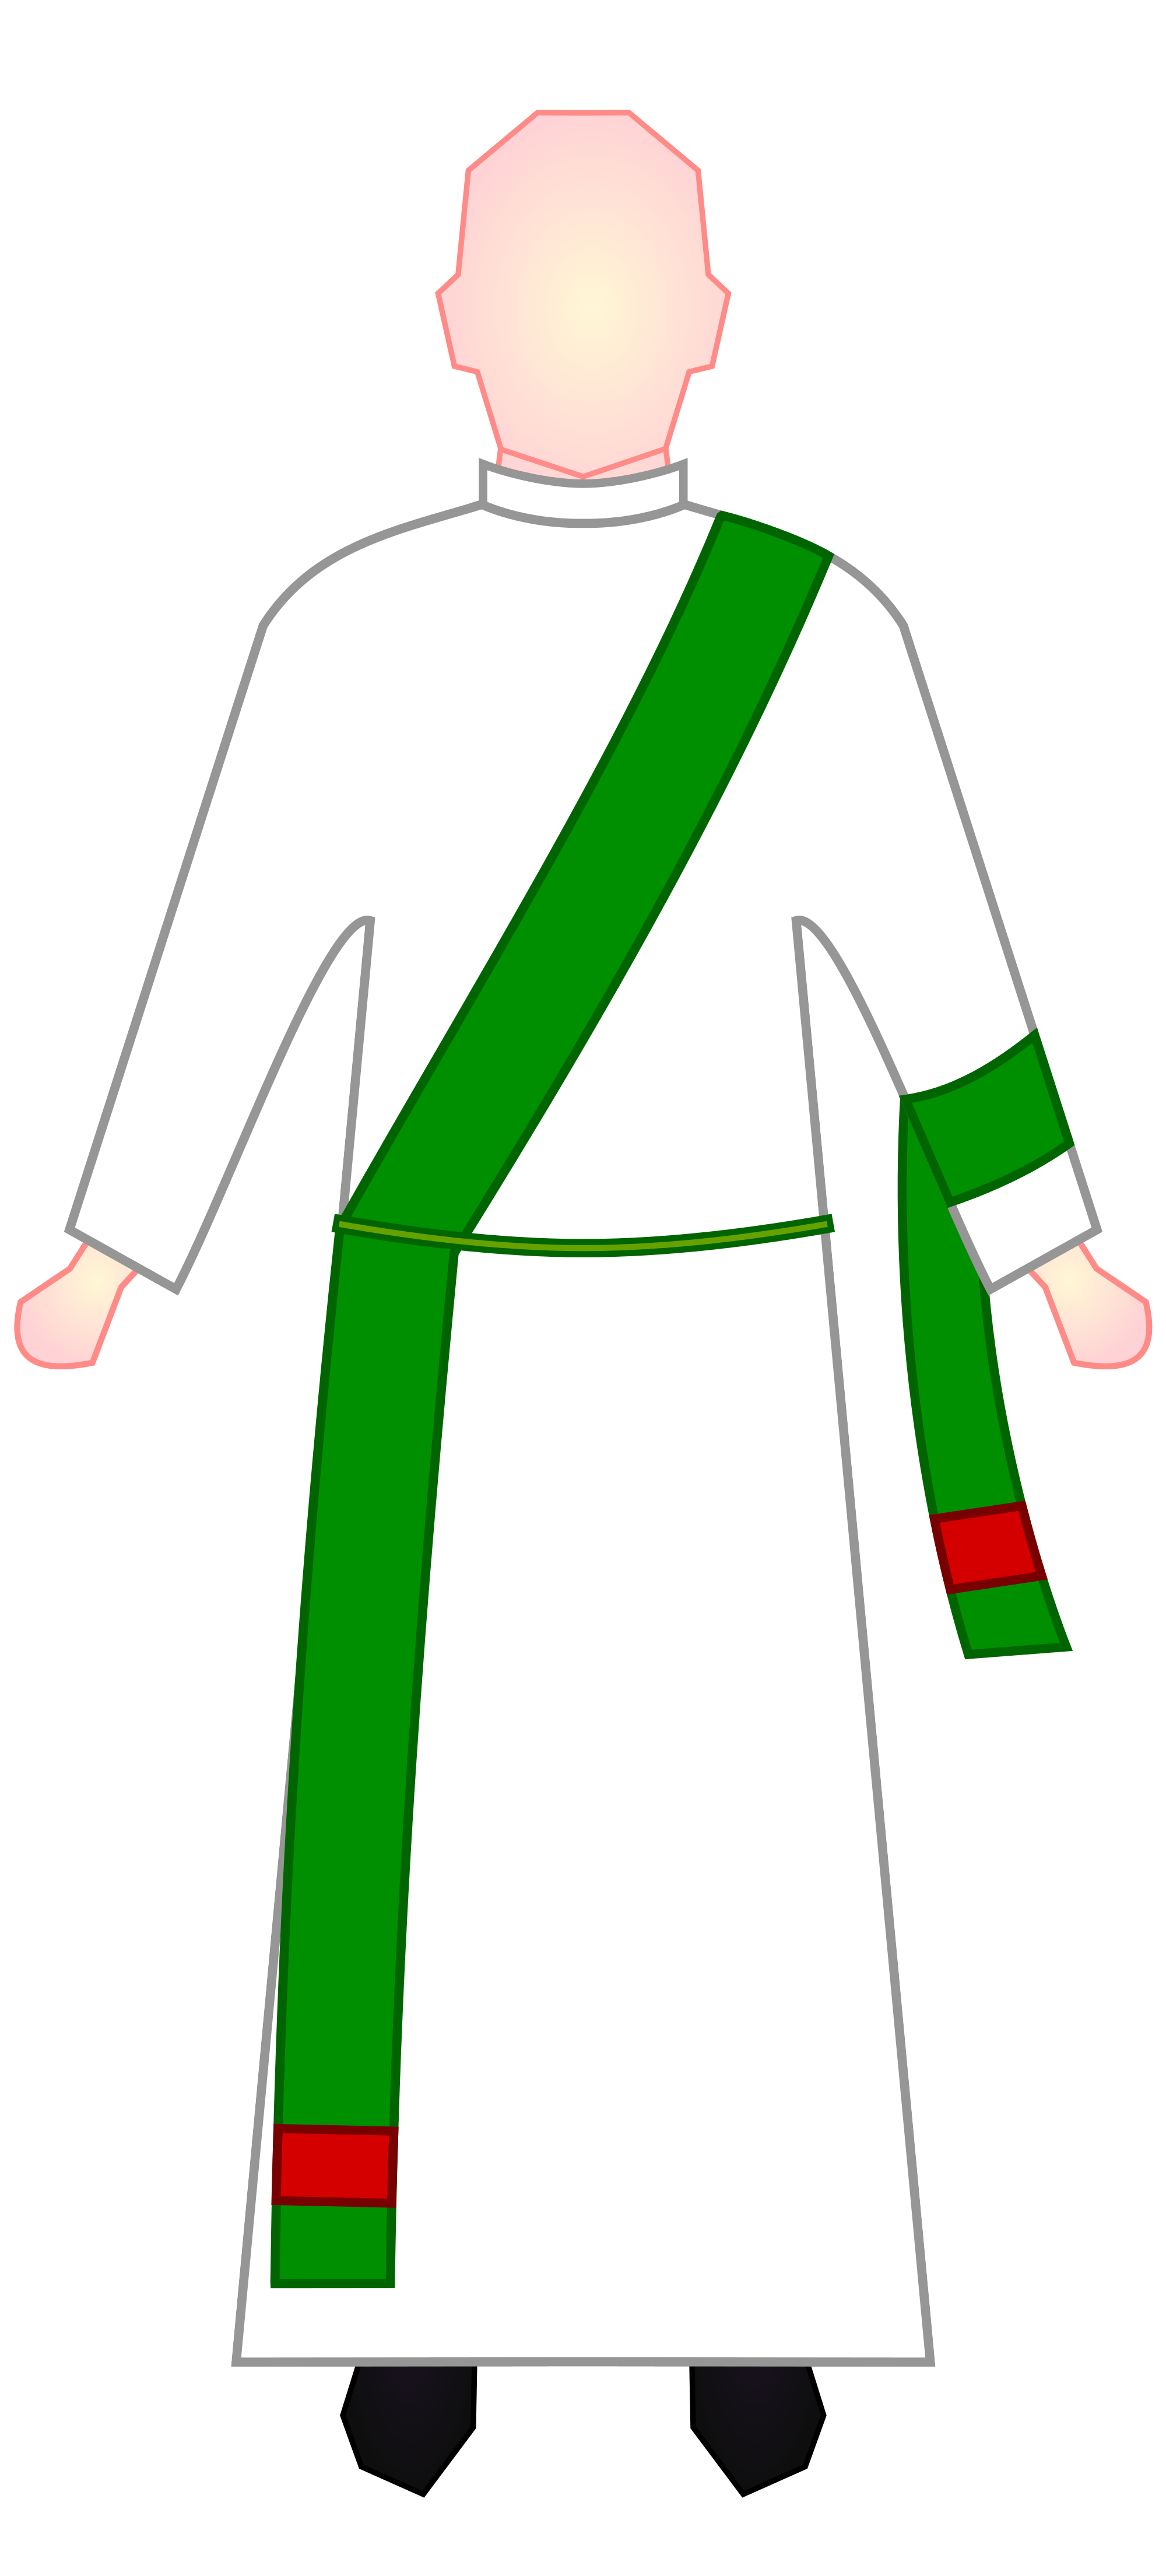 Cross facing right clipart free stock History of Deaconesses - ZENIT - English free stock